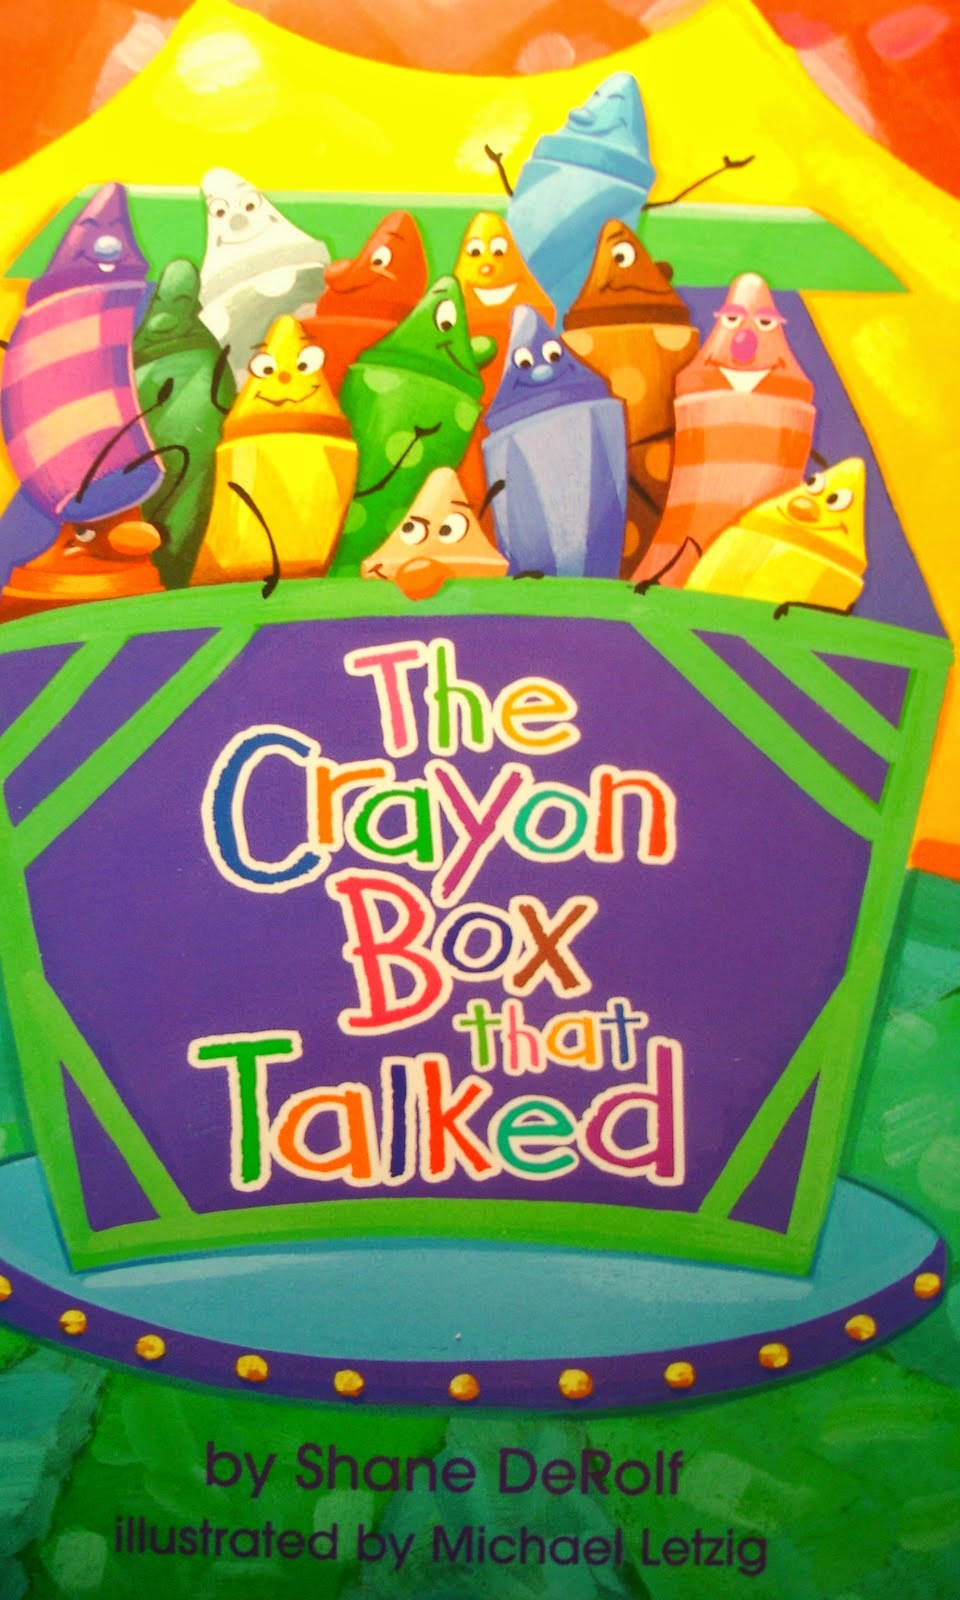 http://www.amazon.com/Crayon-Box-that-Talked/dp/0679886117/ref=sr_1_1?s=books&ie=UTF8&qid=1397930820&sr=1-1&keywords=they+day+my+crayons